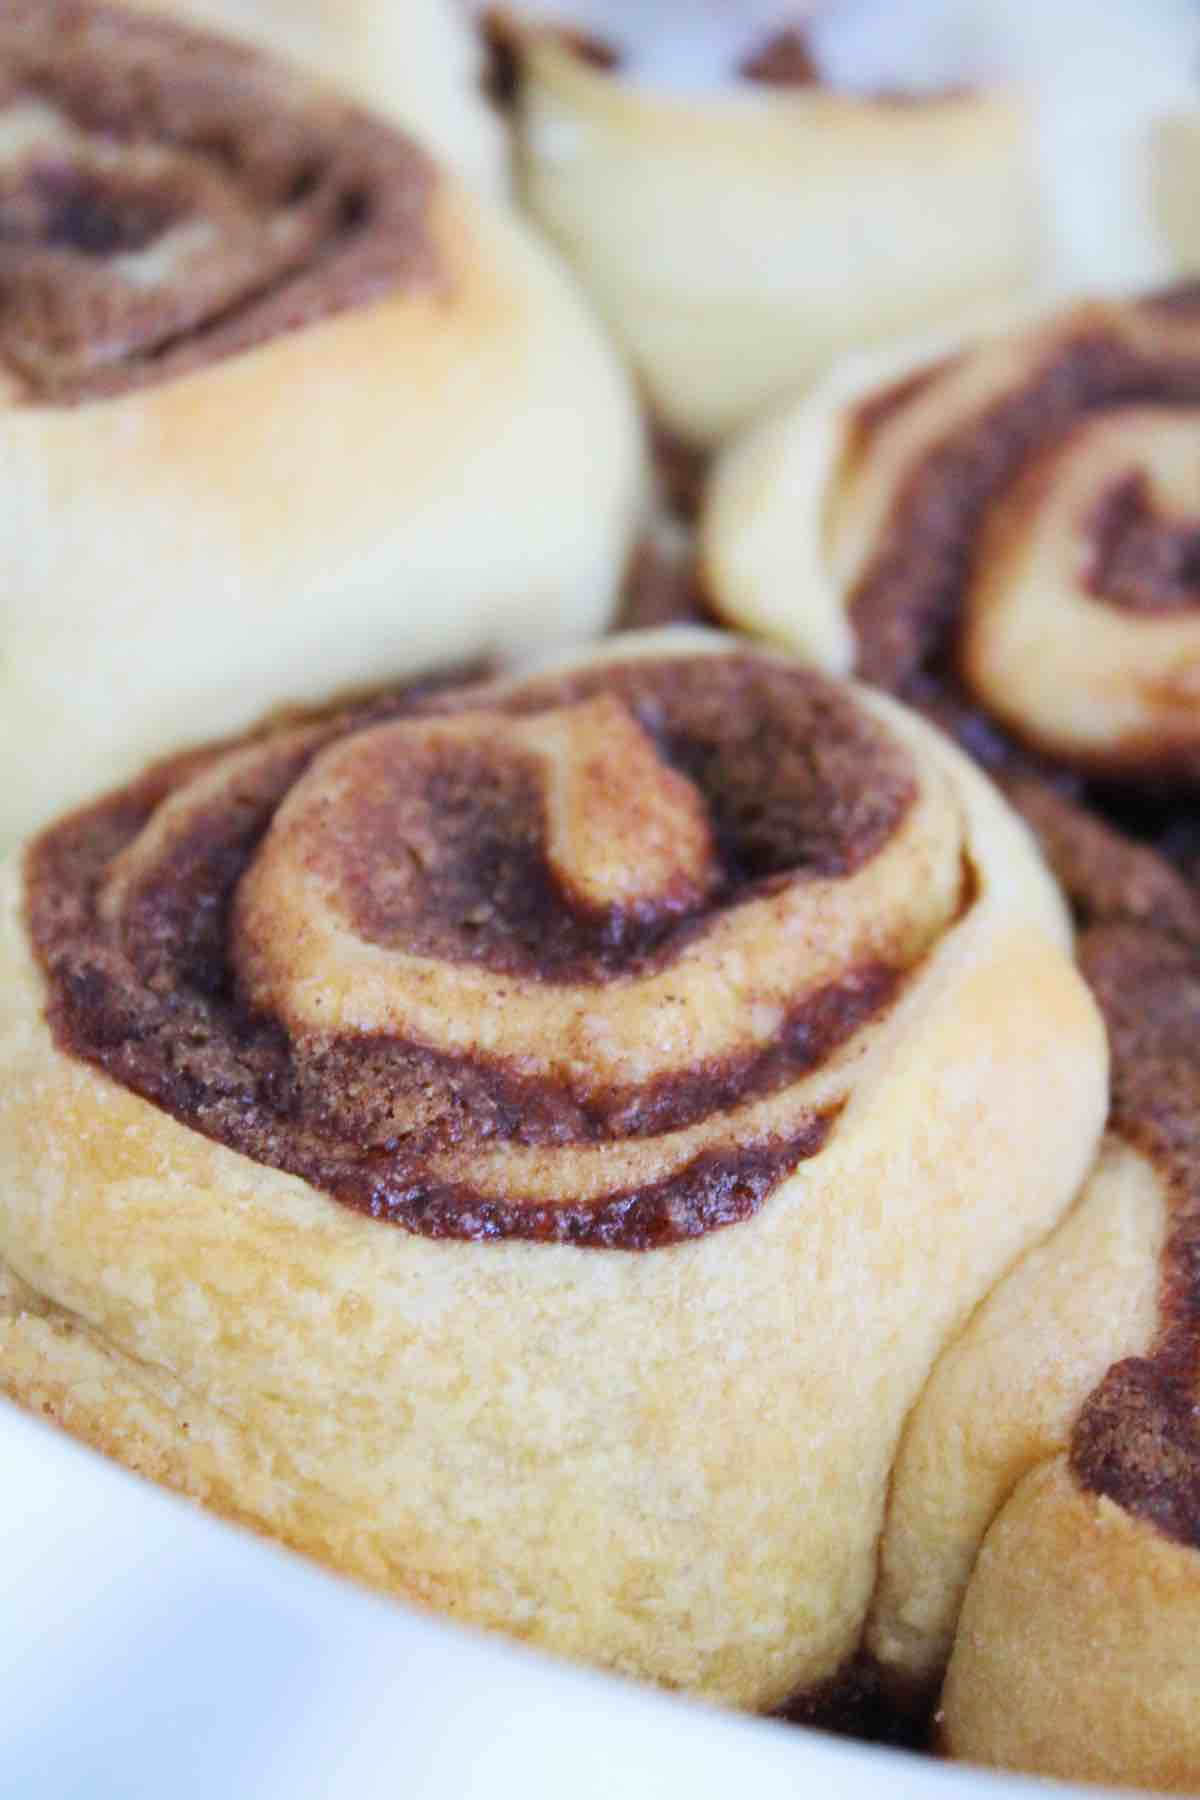 This is what the cookie butter cinnamon rolls will look like once they are finished baking.